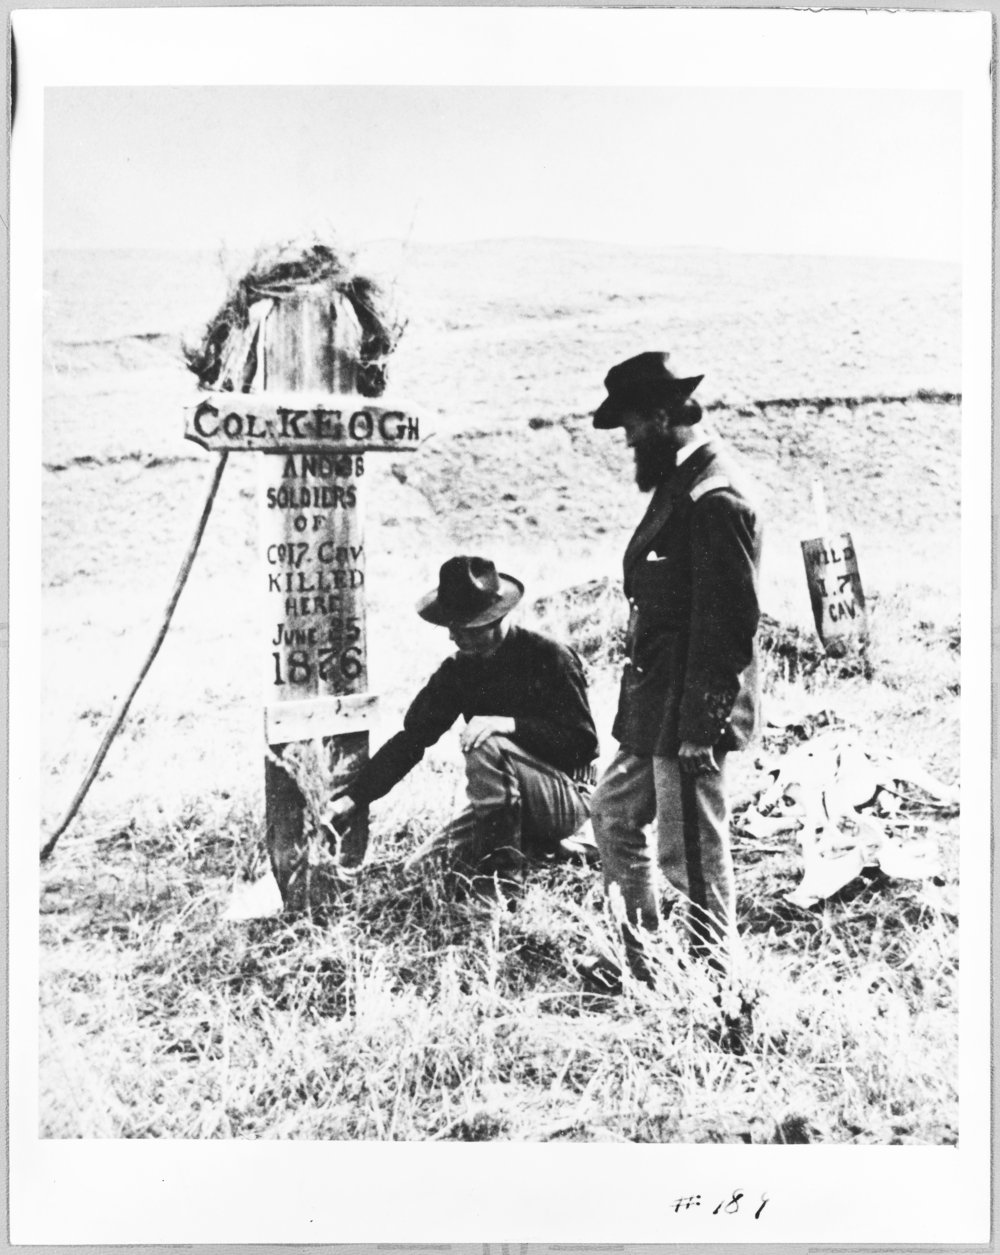 Two soldiers placing flowers on the grave of Colonel Keogh